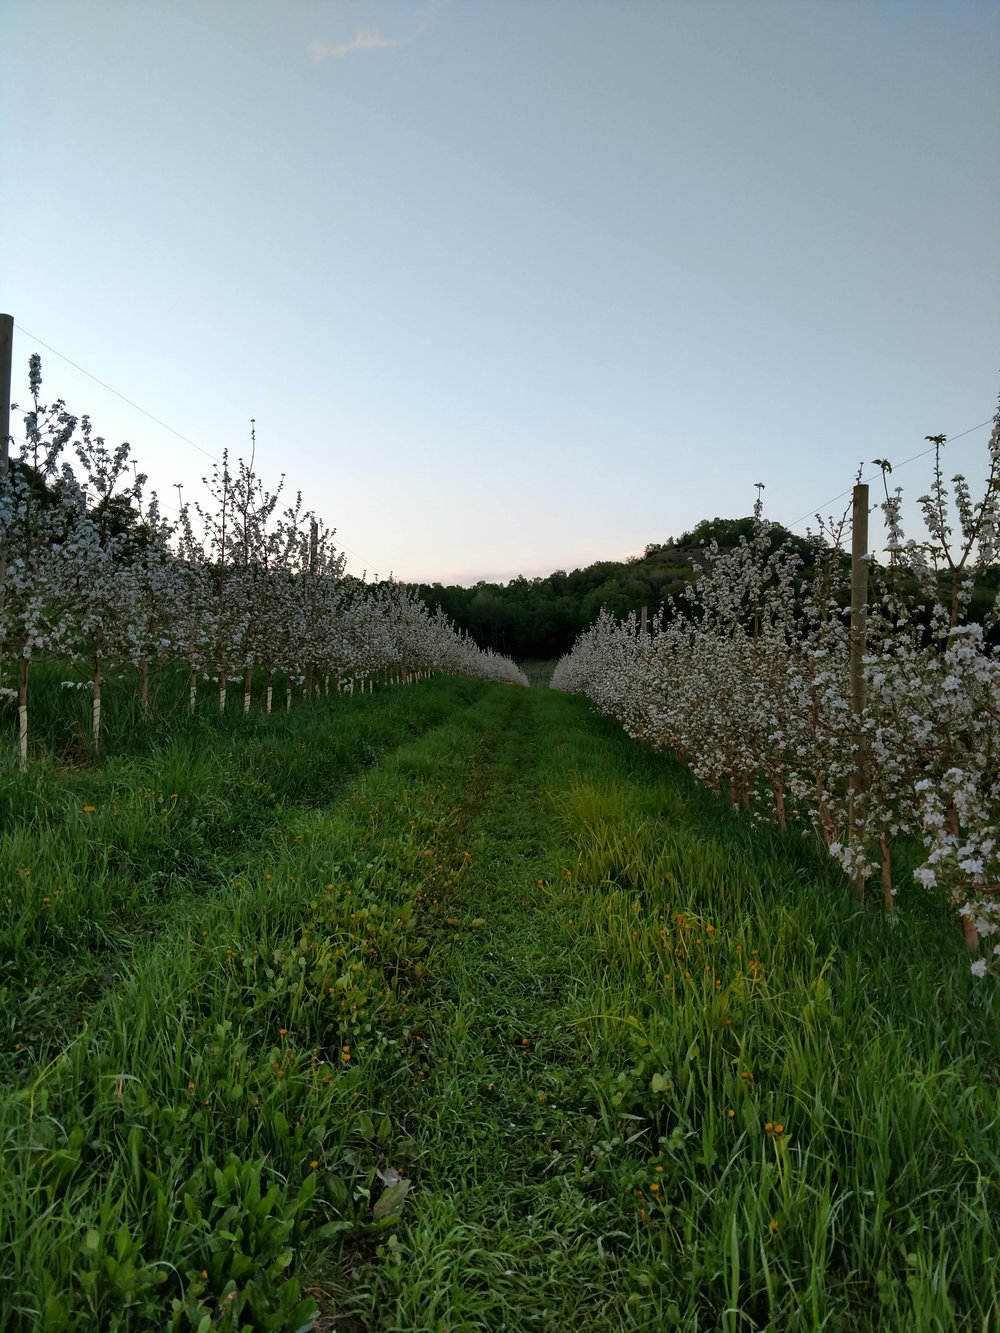 Sacia_Orchards_Gallery_Wisconsin_Orchard_Bloom2.jpg